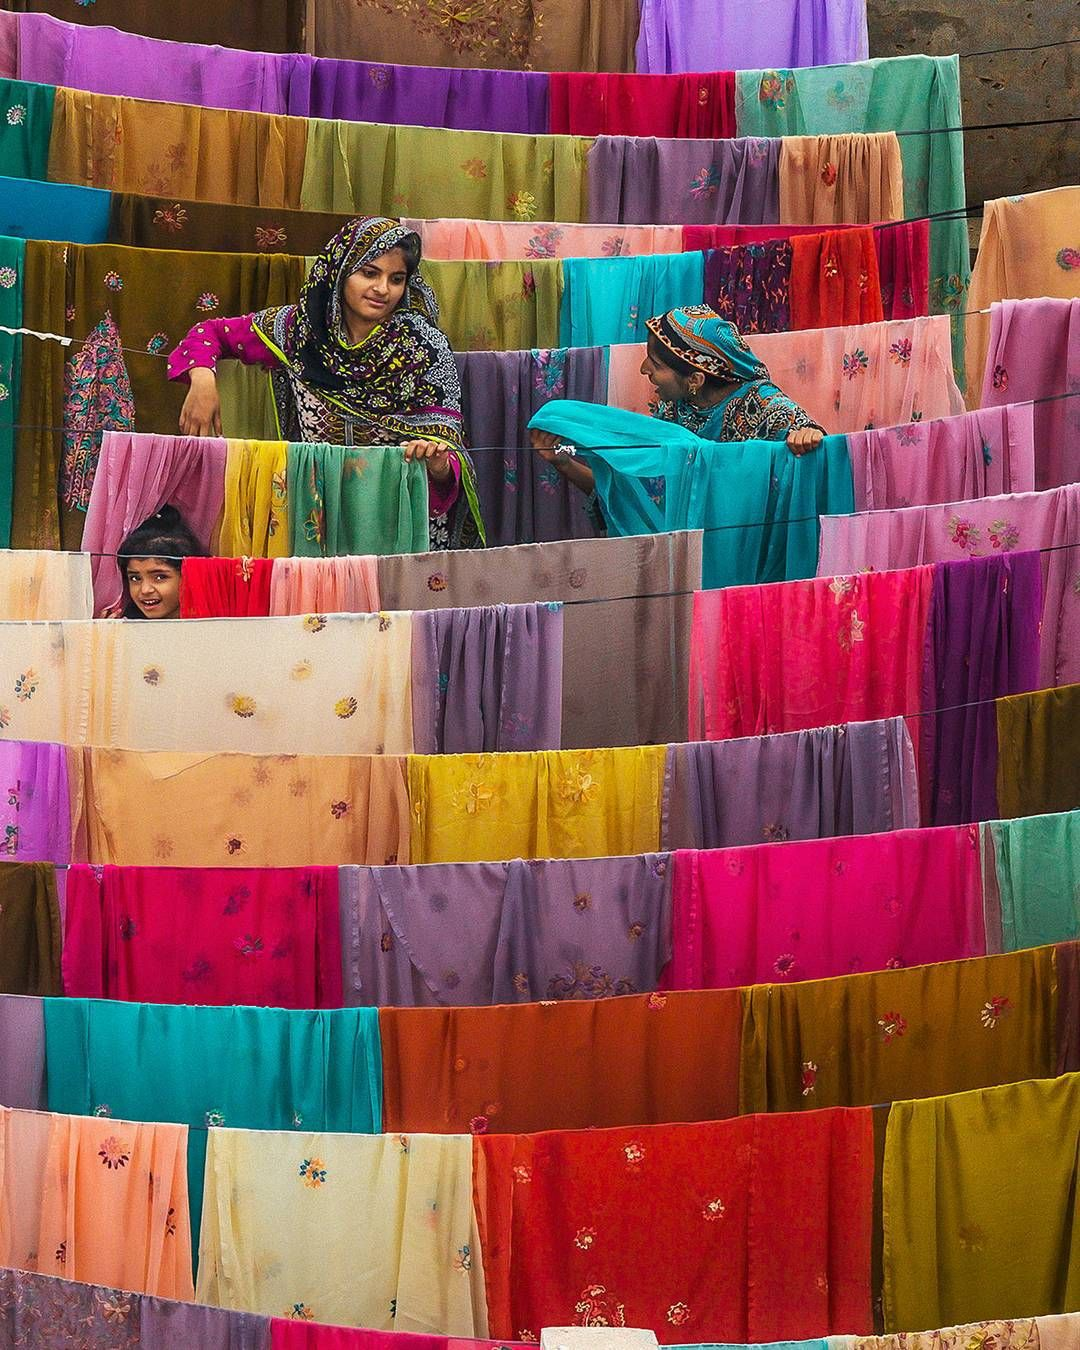 Textiles Drying In Bahawalpur, Punjab, Pakistan. The Punjab region is the economic heart of Pakistan. The textile industry accounts for more than half of exports and 20 percent of the workforce. This sector, however, faces challenges: an unstable rupee, competition from neighboring countries, and power supply shortages that prevent factories from producing at full capacity.  Image and caption from 'Human: A Portrait of Our World' by Yann Arthus-Bertrand. #WhatMakesUsHuman